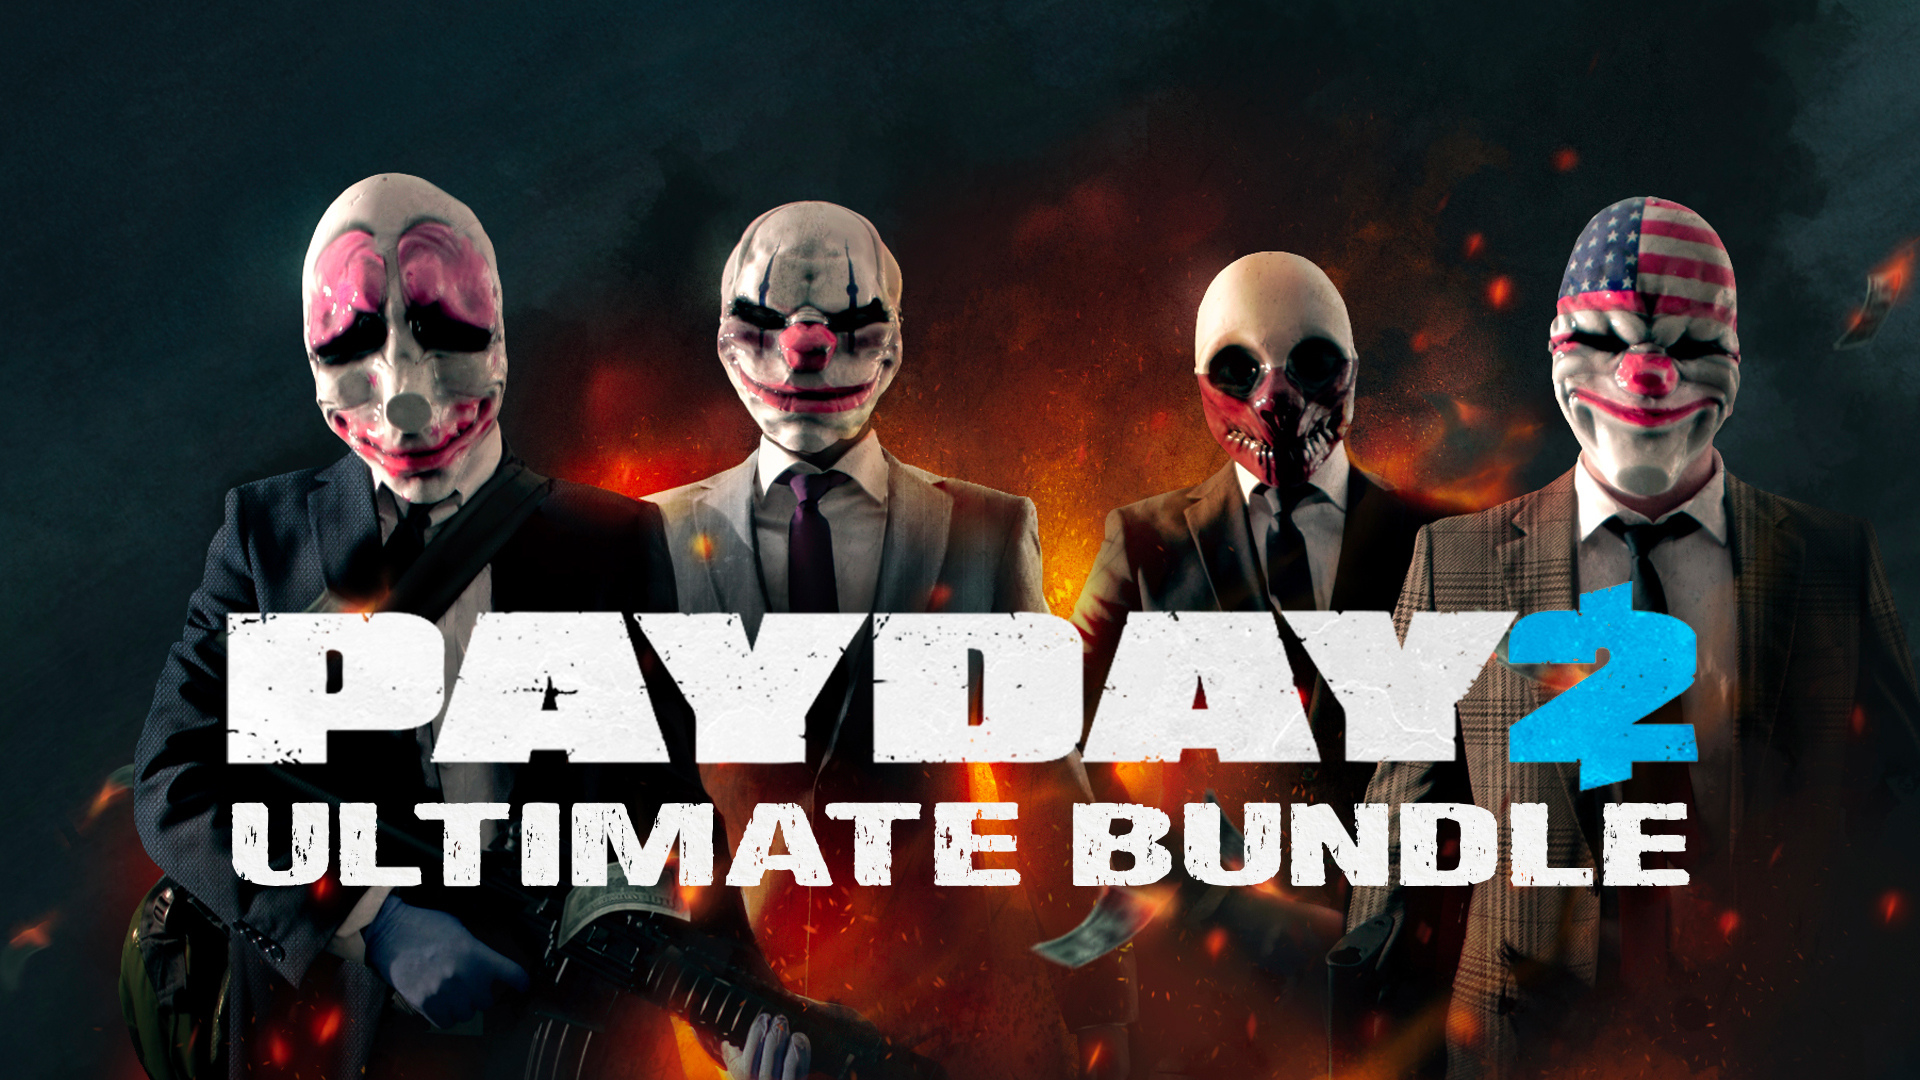 PAYDAY 2 Ultimate Bundle | Steam Game Bundle | Fanatical